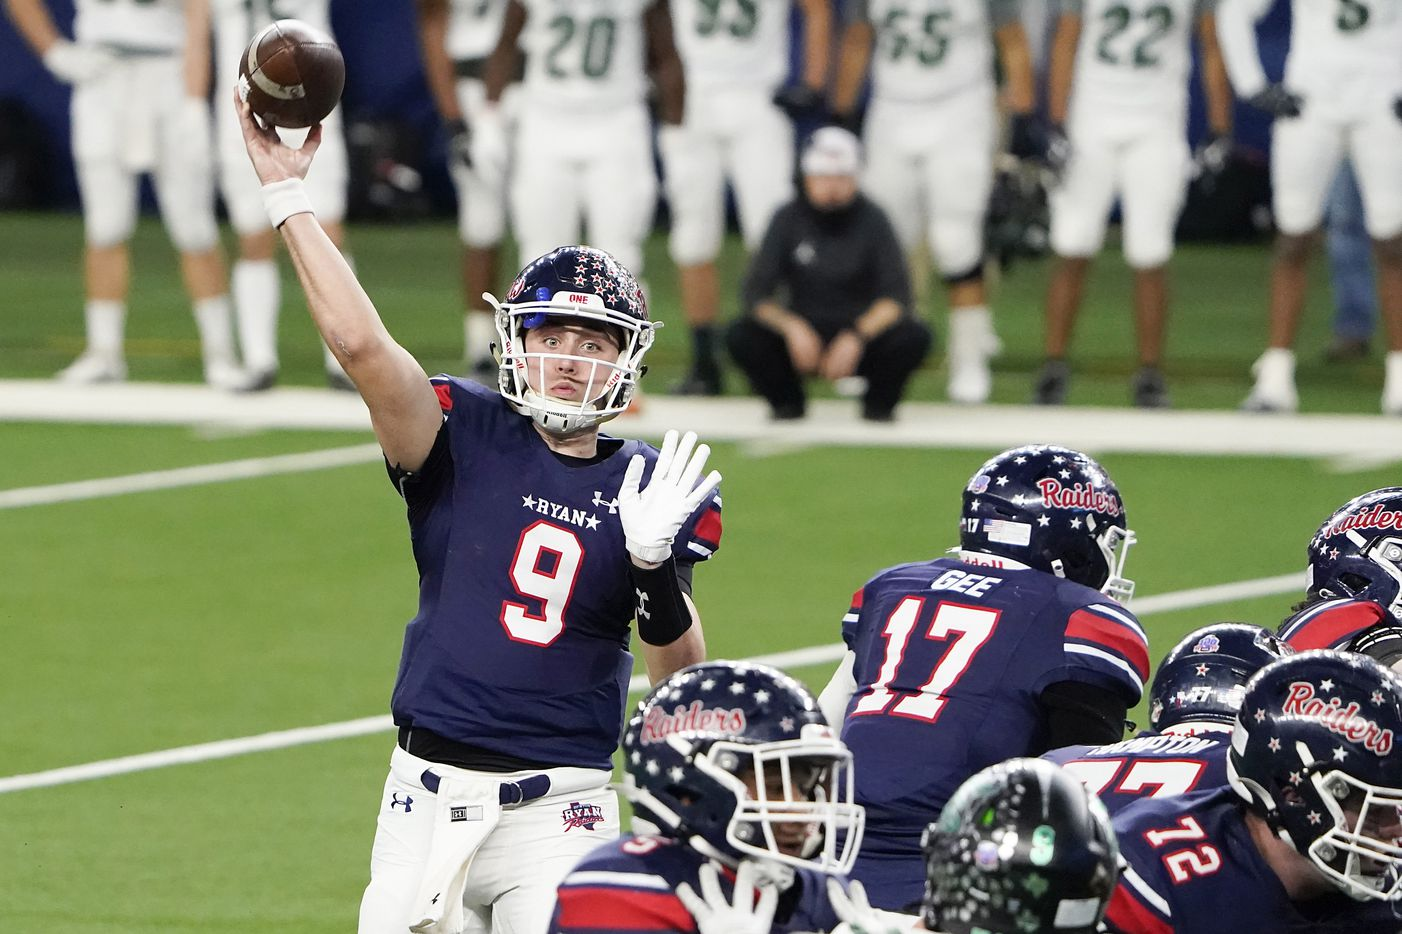 Denton Ryan quarterback Seth Henigan (9) throws a touchdown pass to Ja'Tavion Sanders during the second half of the Class 5A Division I state football championship game against Cedar Park at AT&T Stadium on Friday, Jan. 15, 2021, in Arlington, Texas. Ryan won the game 59-14. (Smiley N. Pool/The Dallas Morning News)